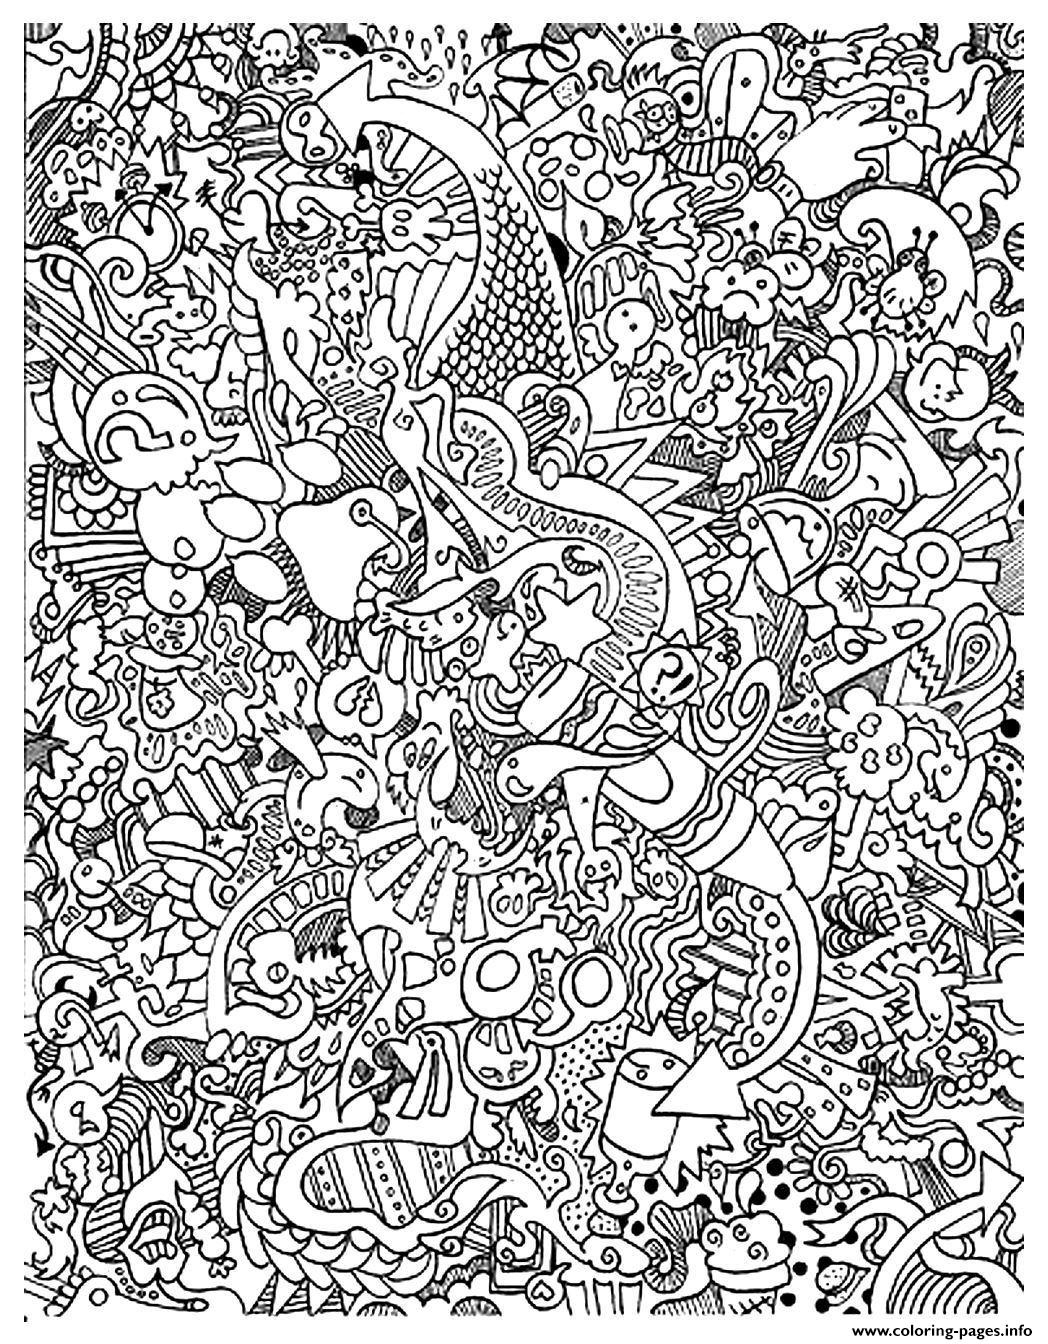 1048x1344 Printable Doodle Art Adult Doodle Art Doodling Coloring Pages